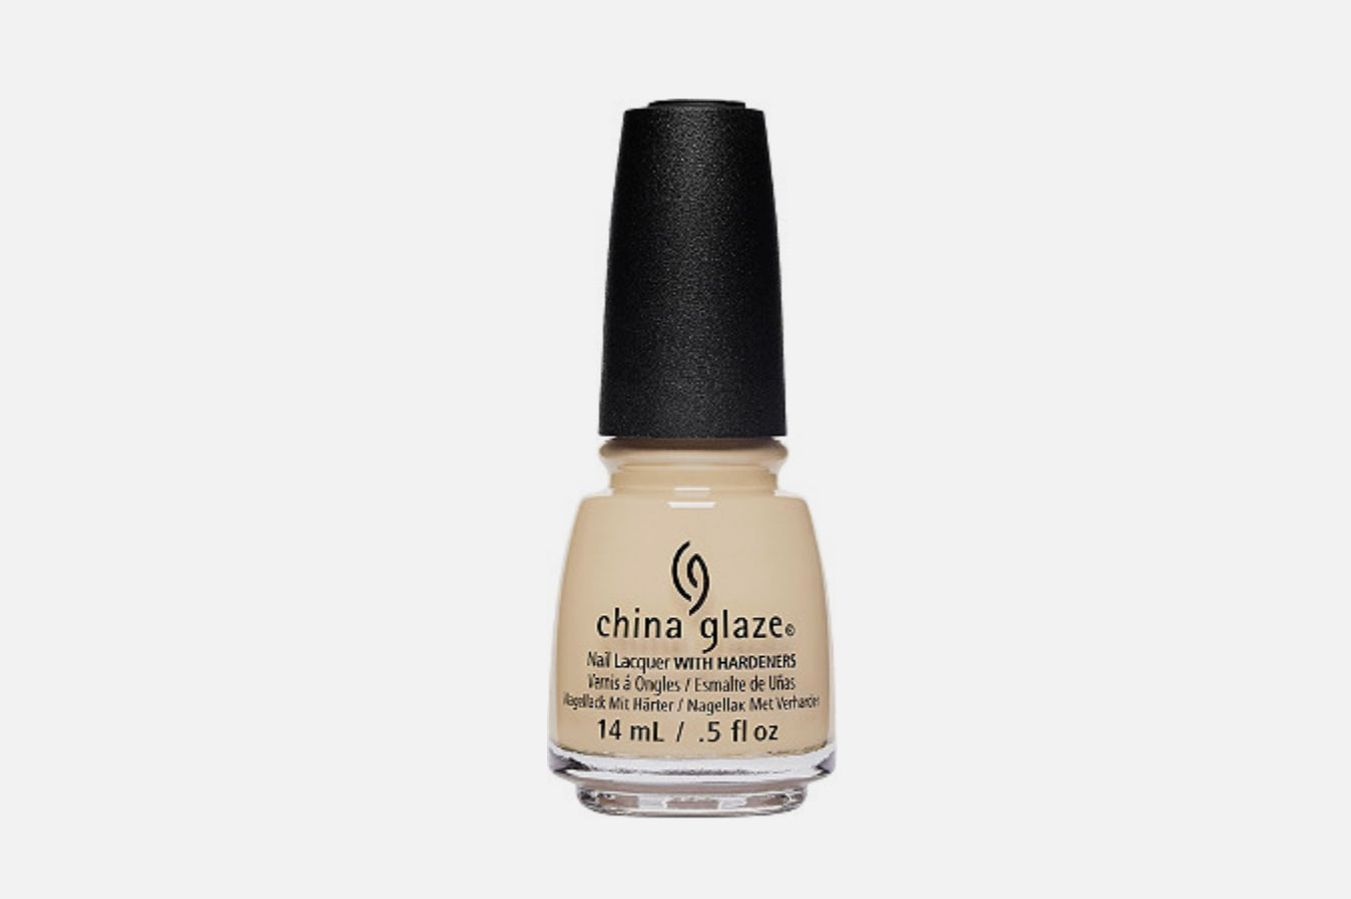 China Glaze Nail Lacquer in Bourgeois Beige